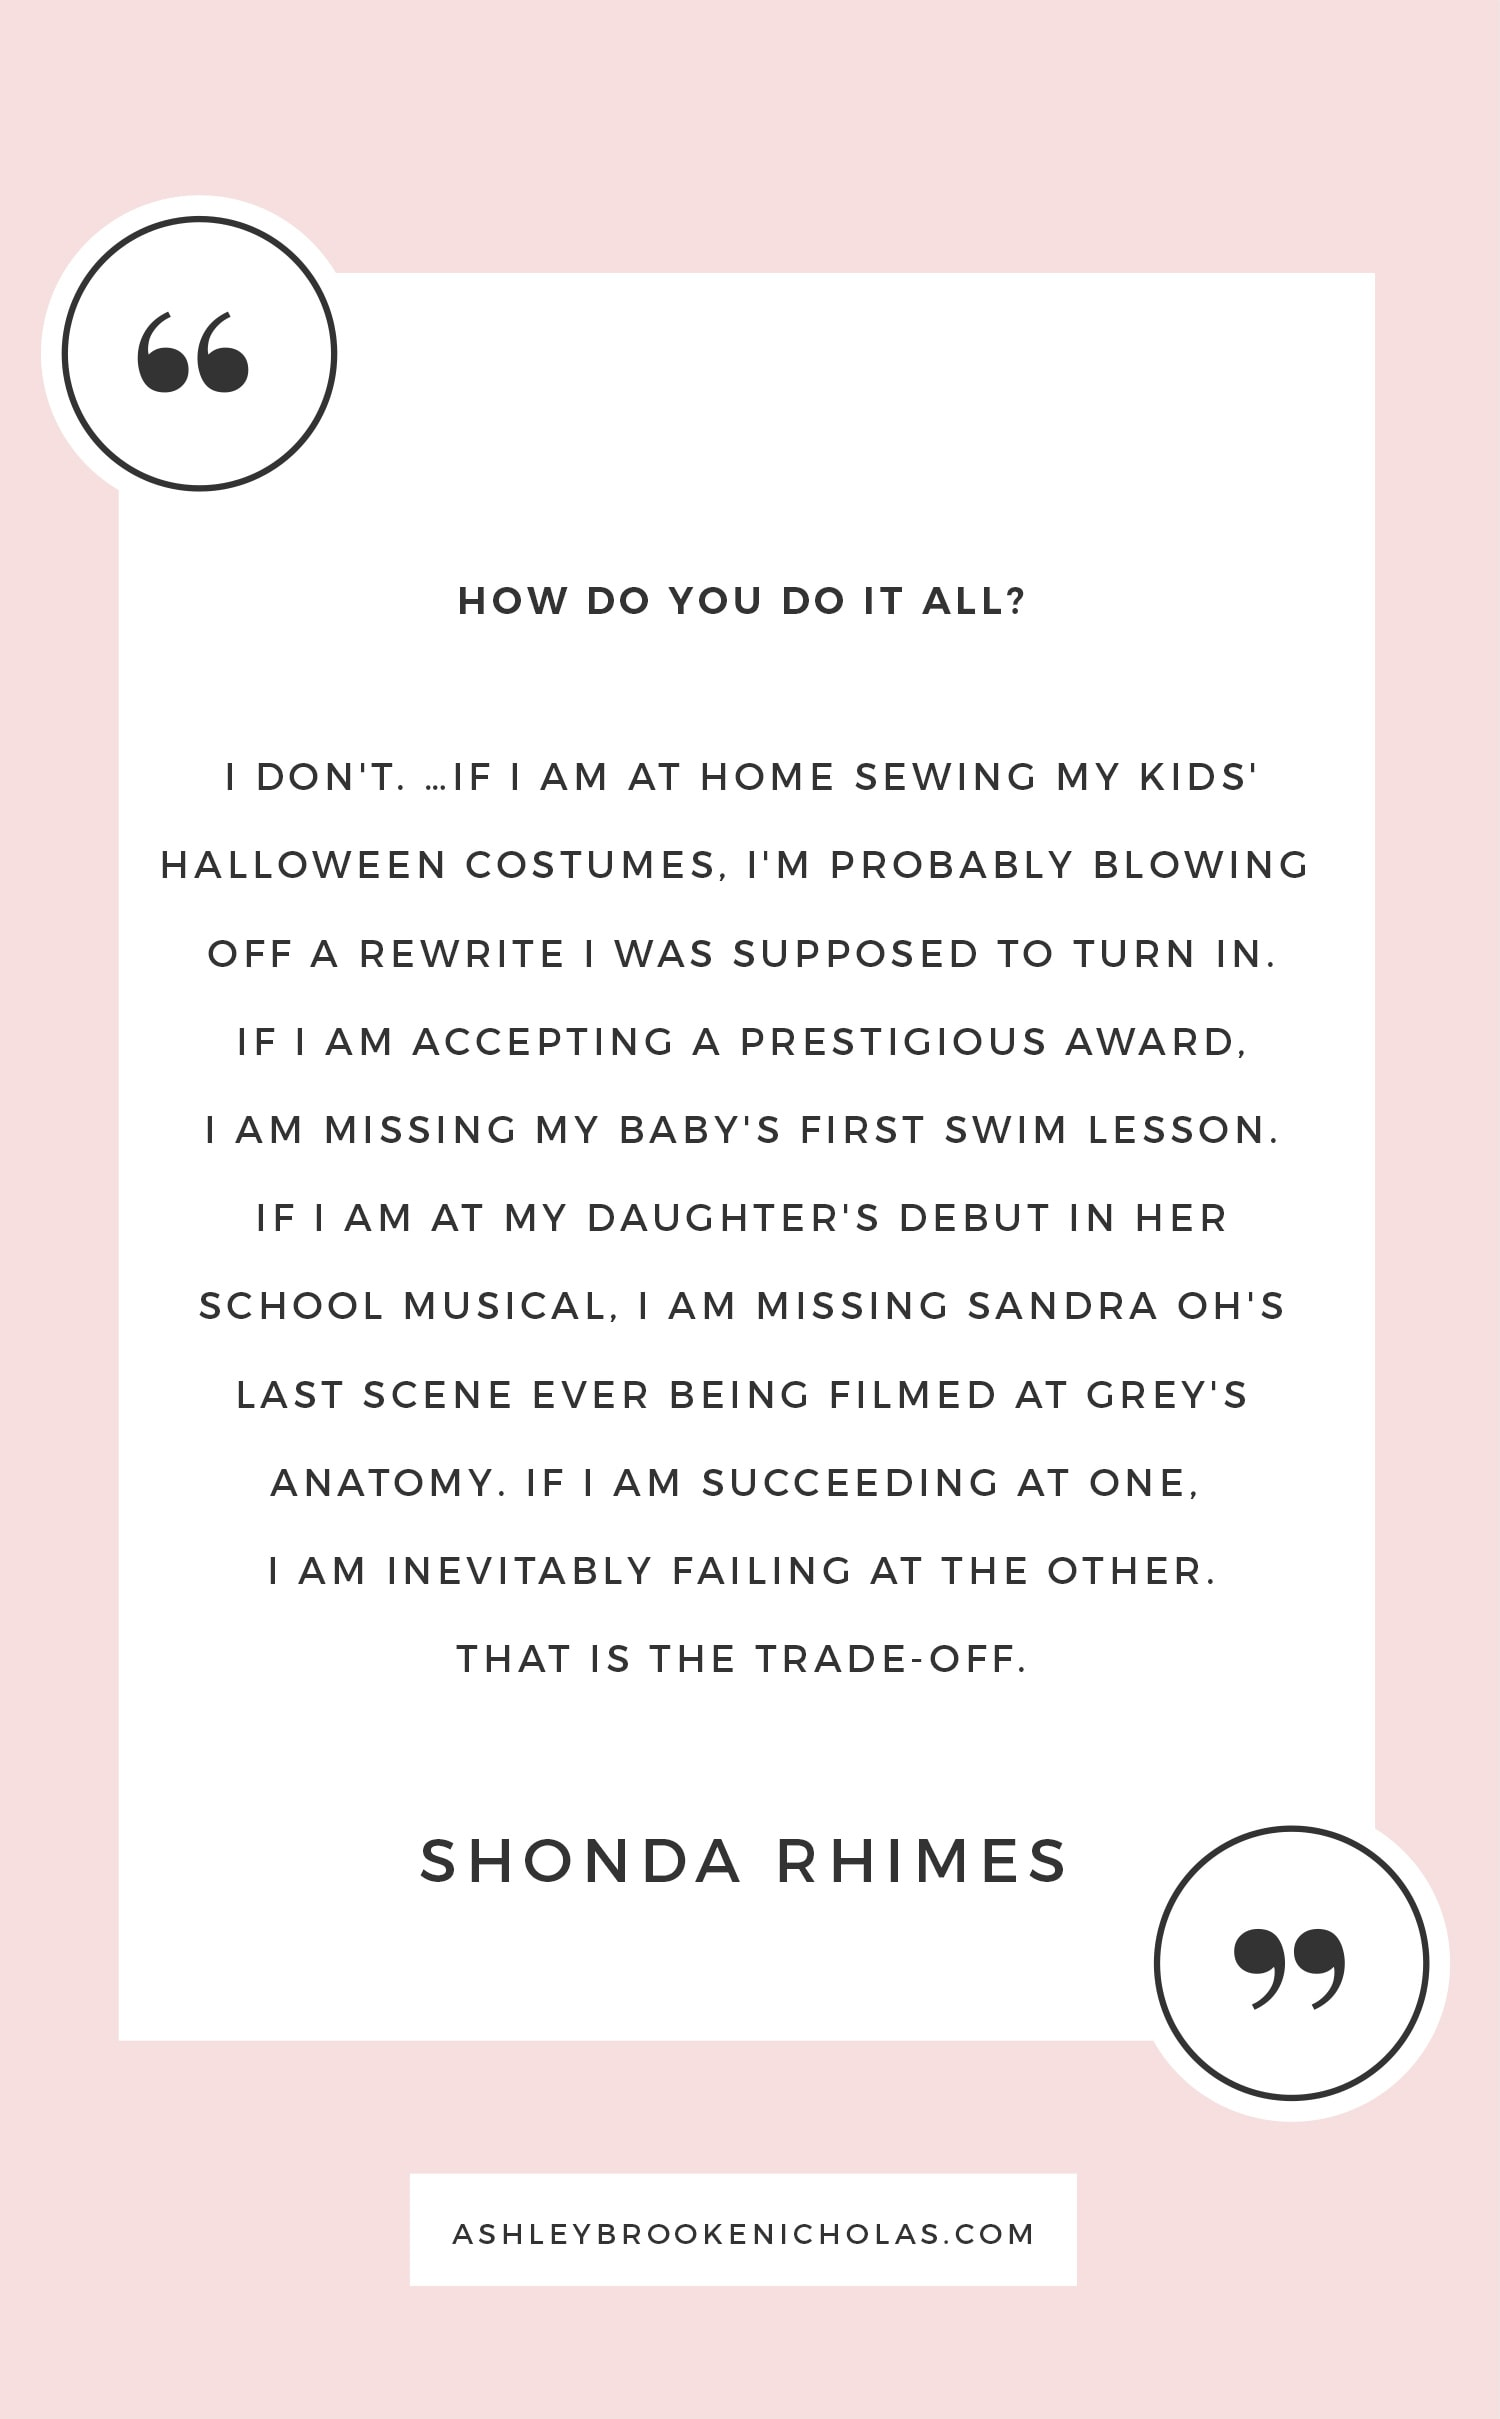 """The best Shonda Rhimes quotes   """"I don't. … If I am at home sewing my kids' Halloween costumes, I'm probably blowing off a rewrite I was supposed to turn in. If I am accepting a prestigious award, I am missing my baby's first swim lesson. If I am at my daughter's debut in her school musical, I am missing Sandra Oh's last scene ever being filmed at Grey's Anatomy. If I am succeeding at one, I am inevitably failing at the other. That is the trade-off."""" Rhimes answering the age-old """"How do you do it all?"""" question during the Dartmouth Commencement speech."""